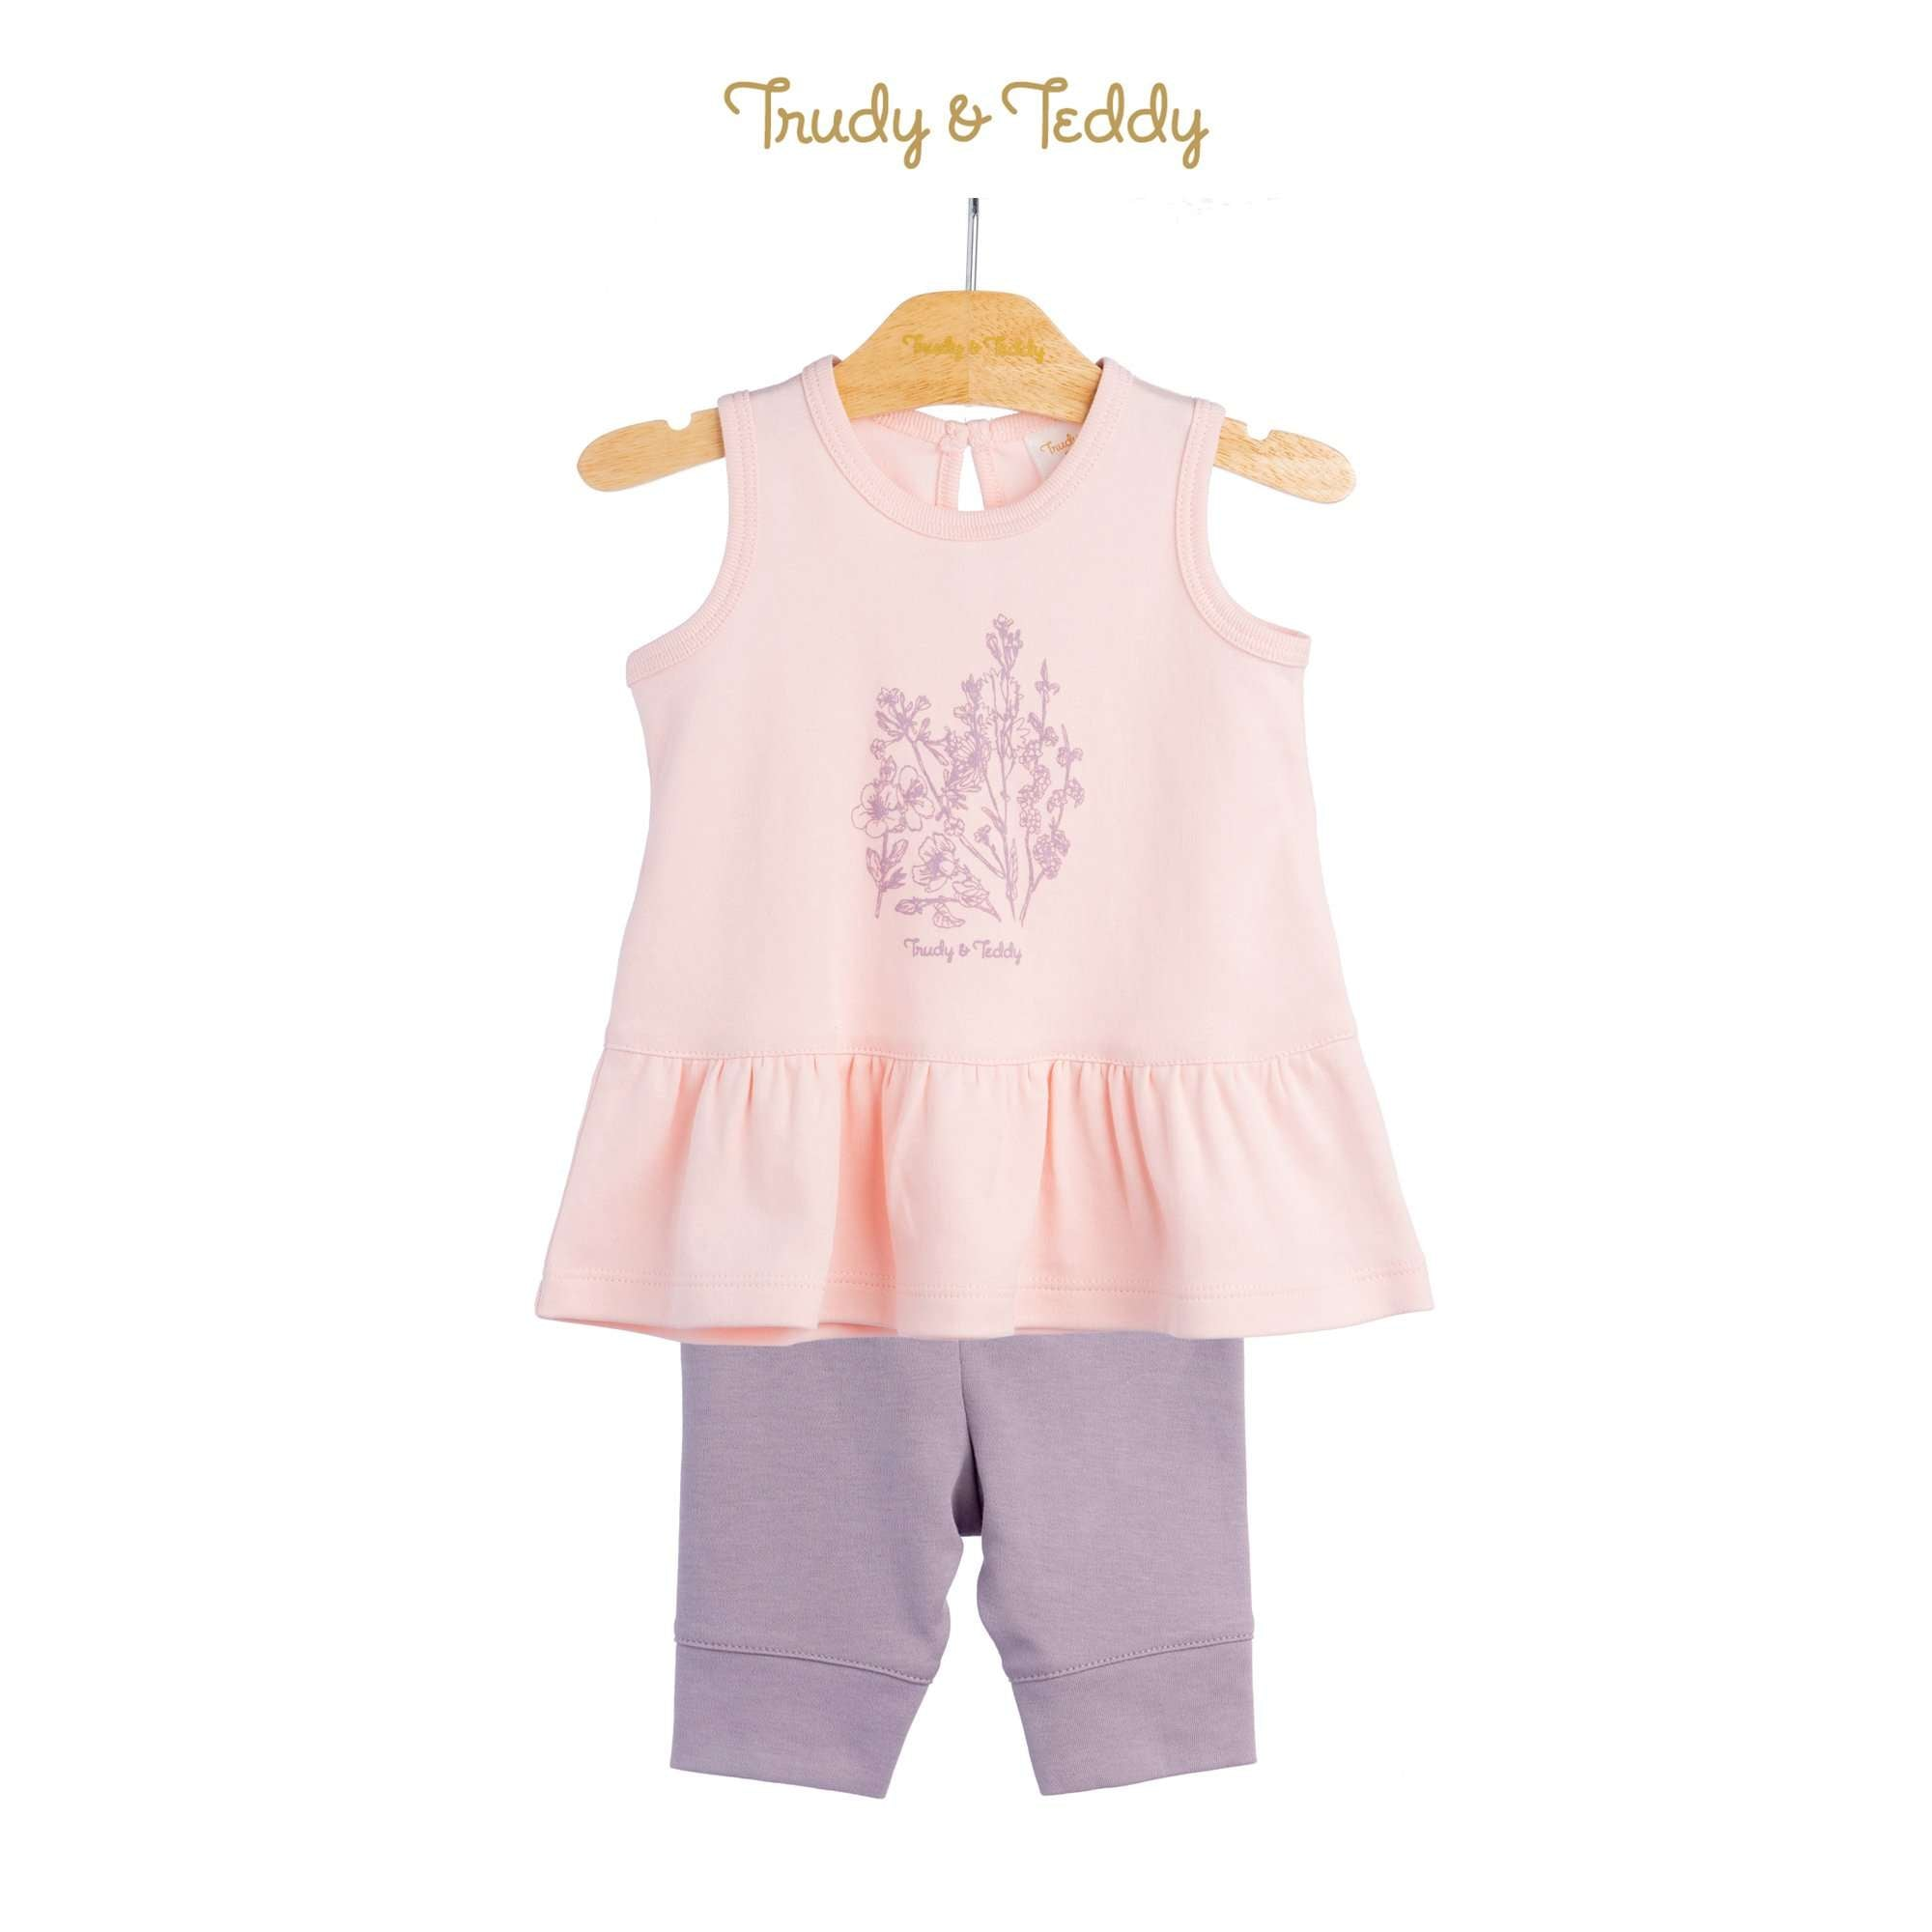 Trudy & Teddy Baby Girl Sleeveless Bermuda Suit 820043-402 : Buy Trudy & Teddy online at CMG.MY